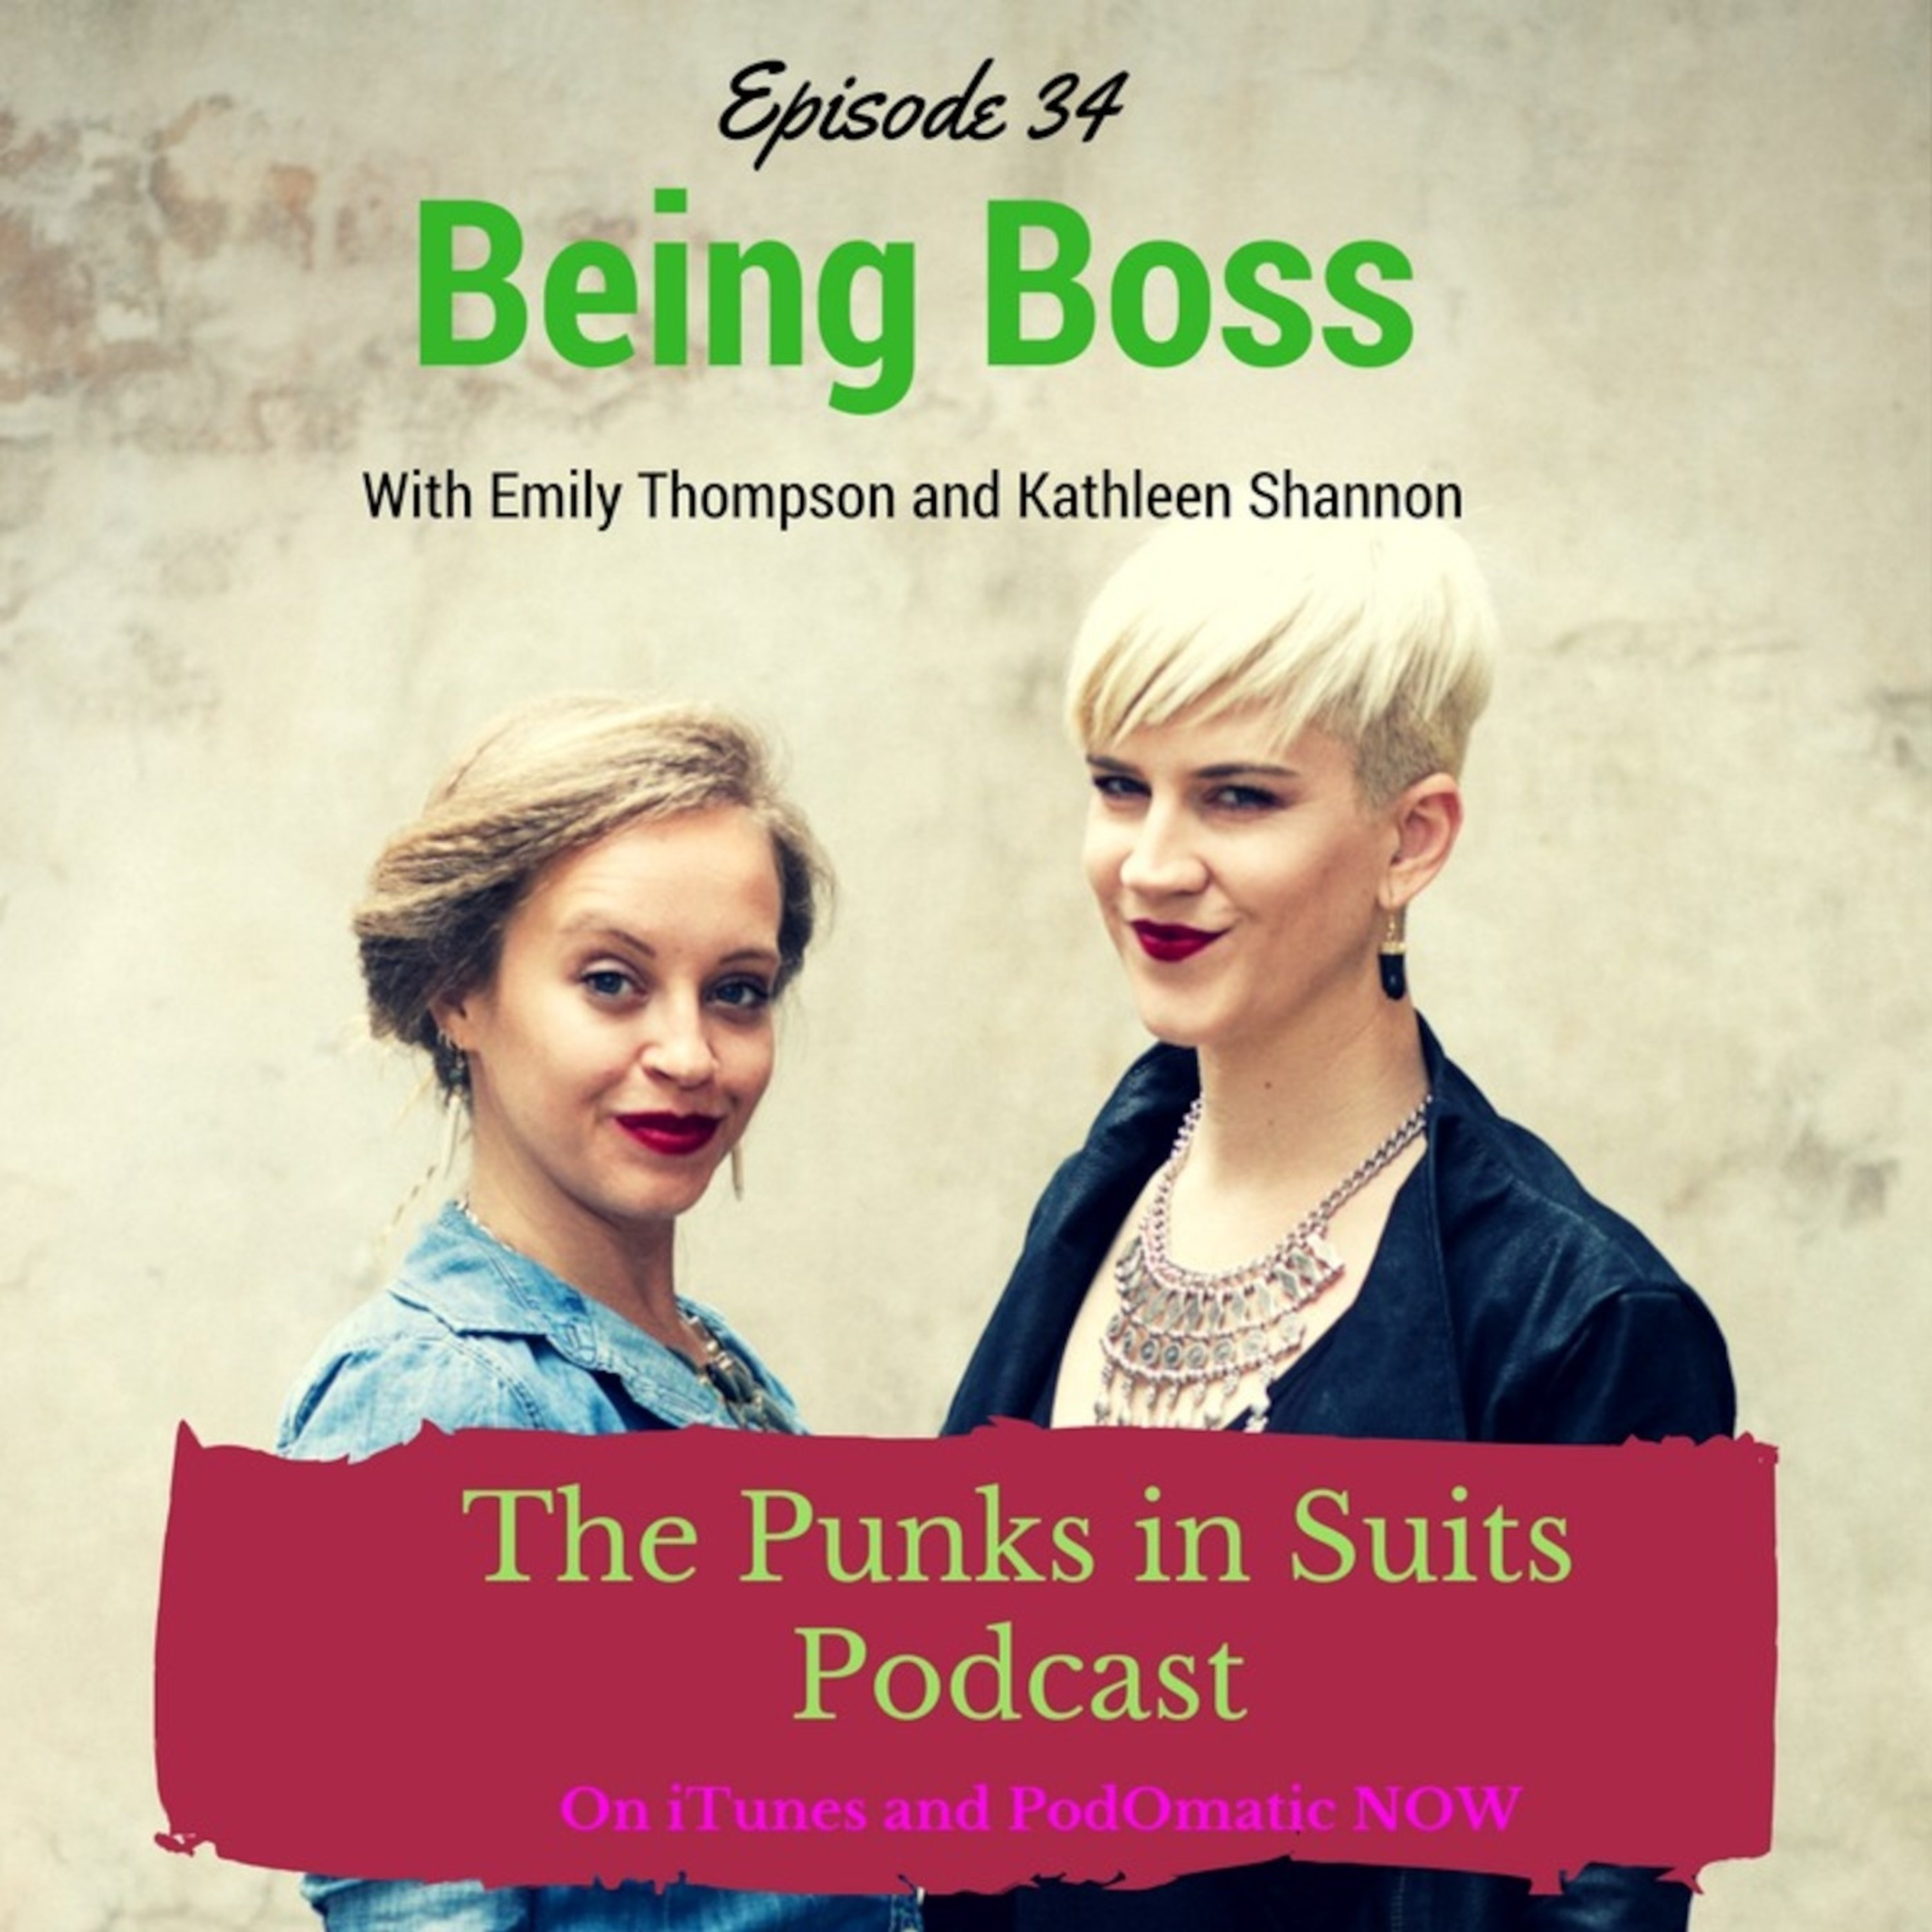 Episode 34: Being Boss - With Emily Thompson and Kathleen Shannon